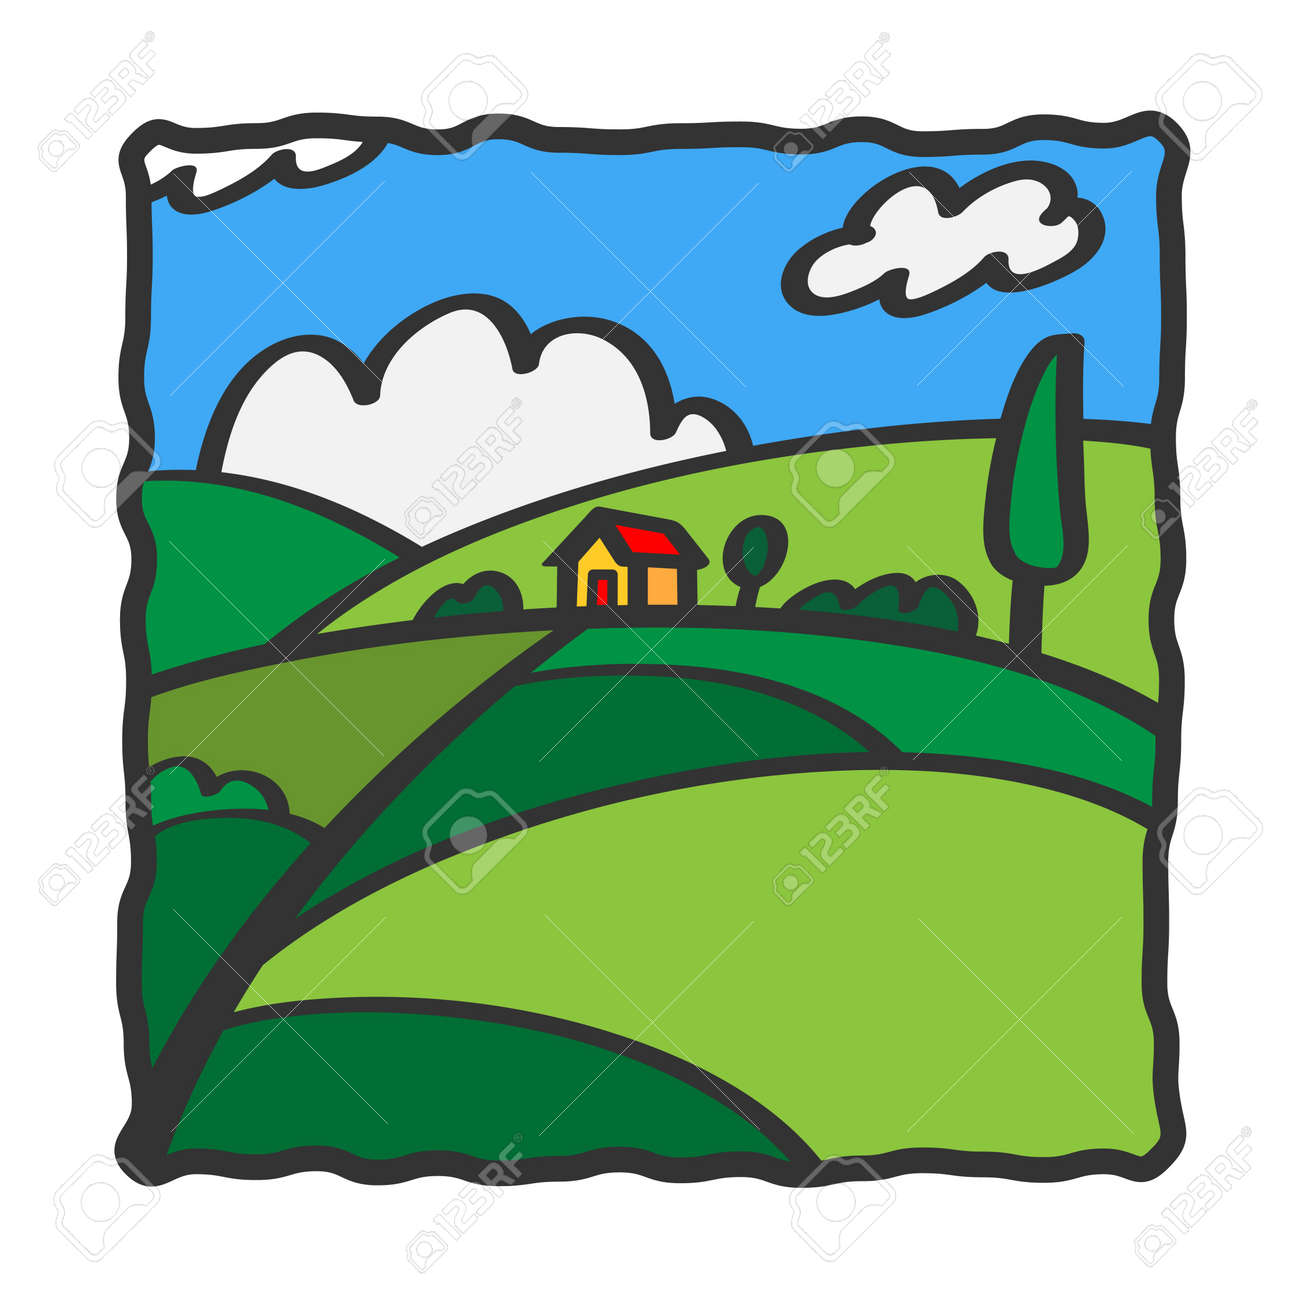 House on the hill Stock Photo - 13942191